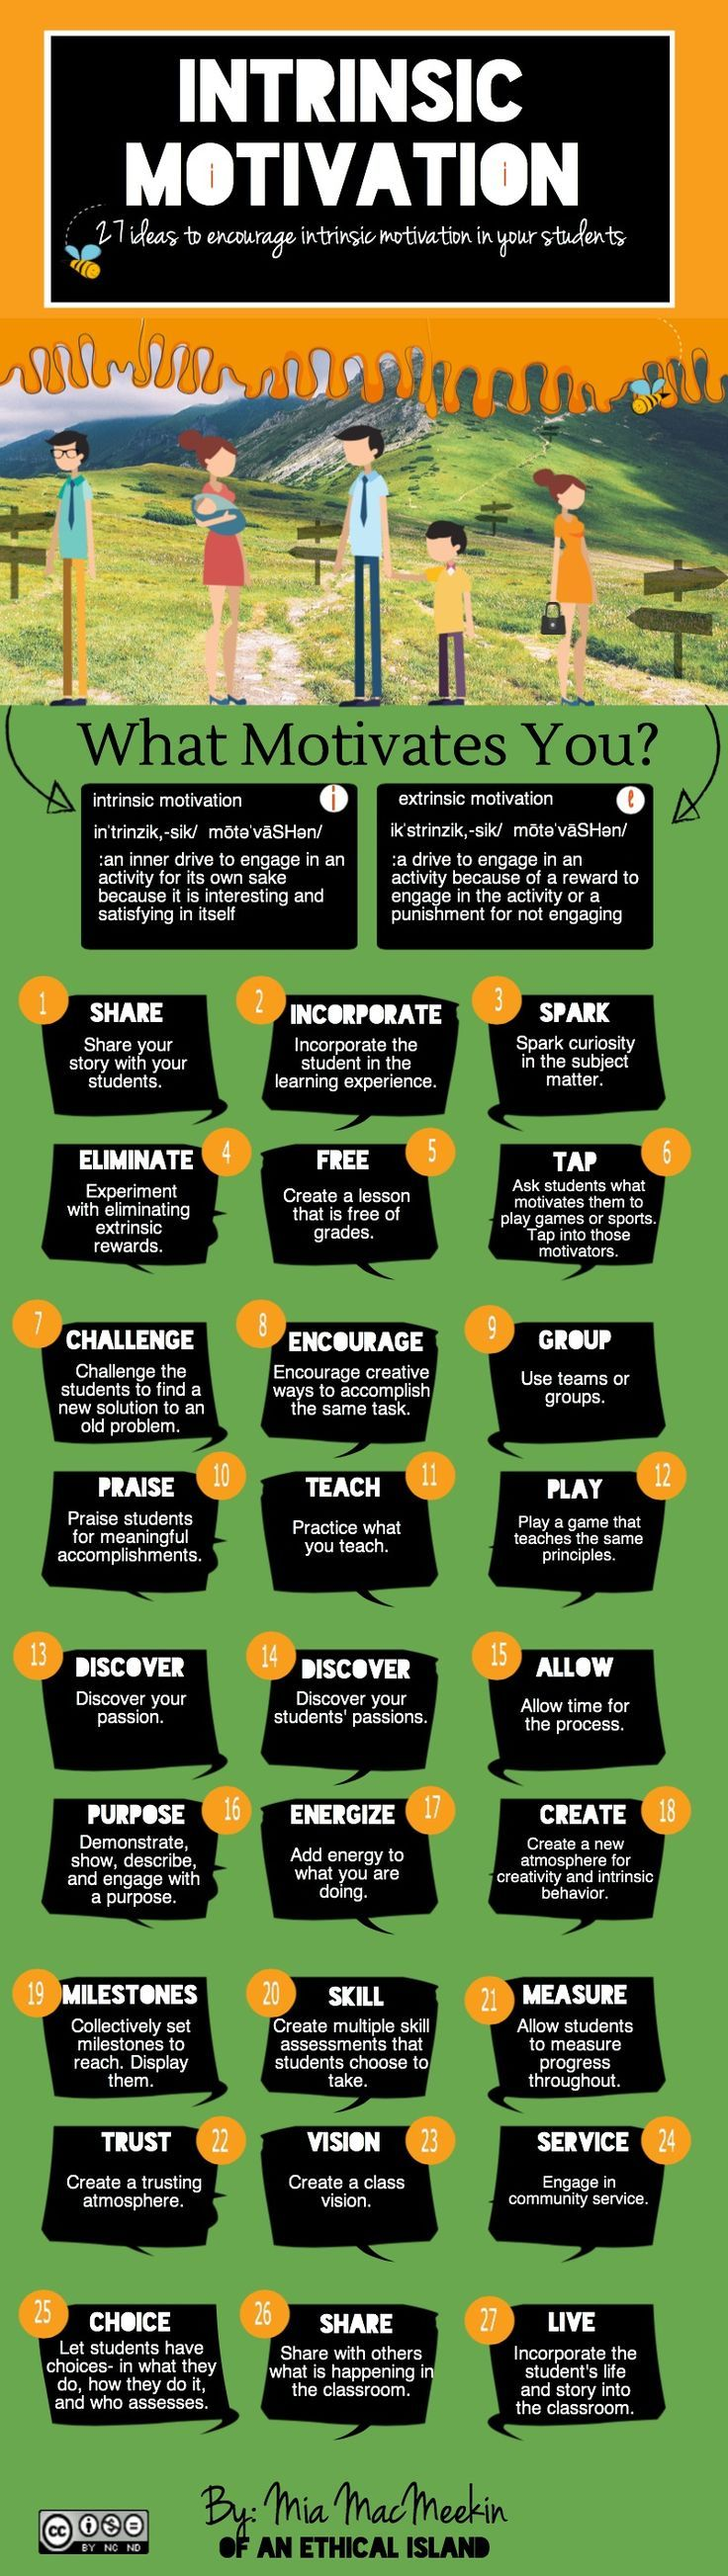 Intrinsic Motivation in the Classroom